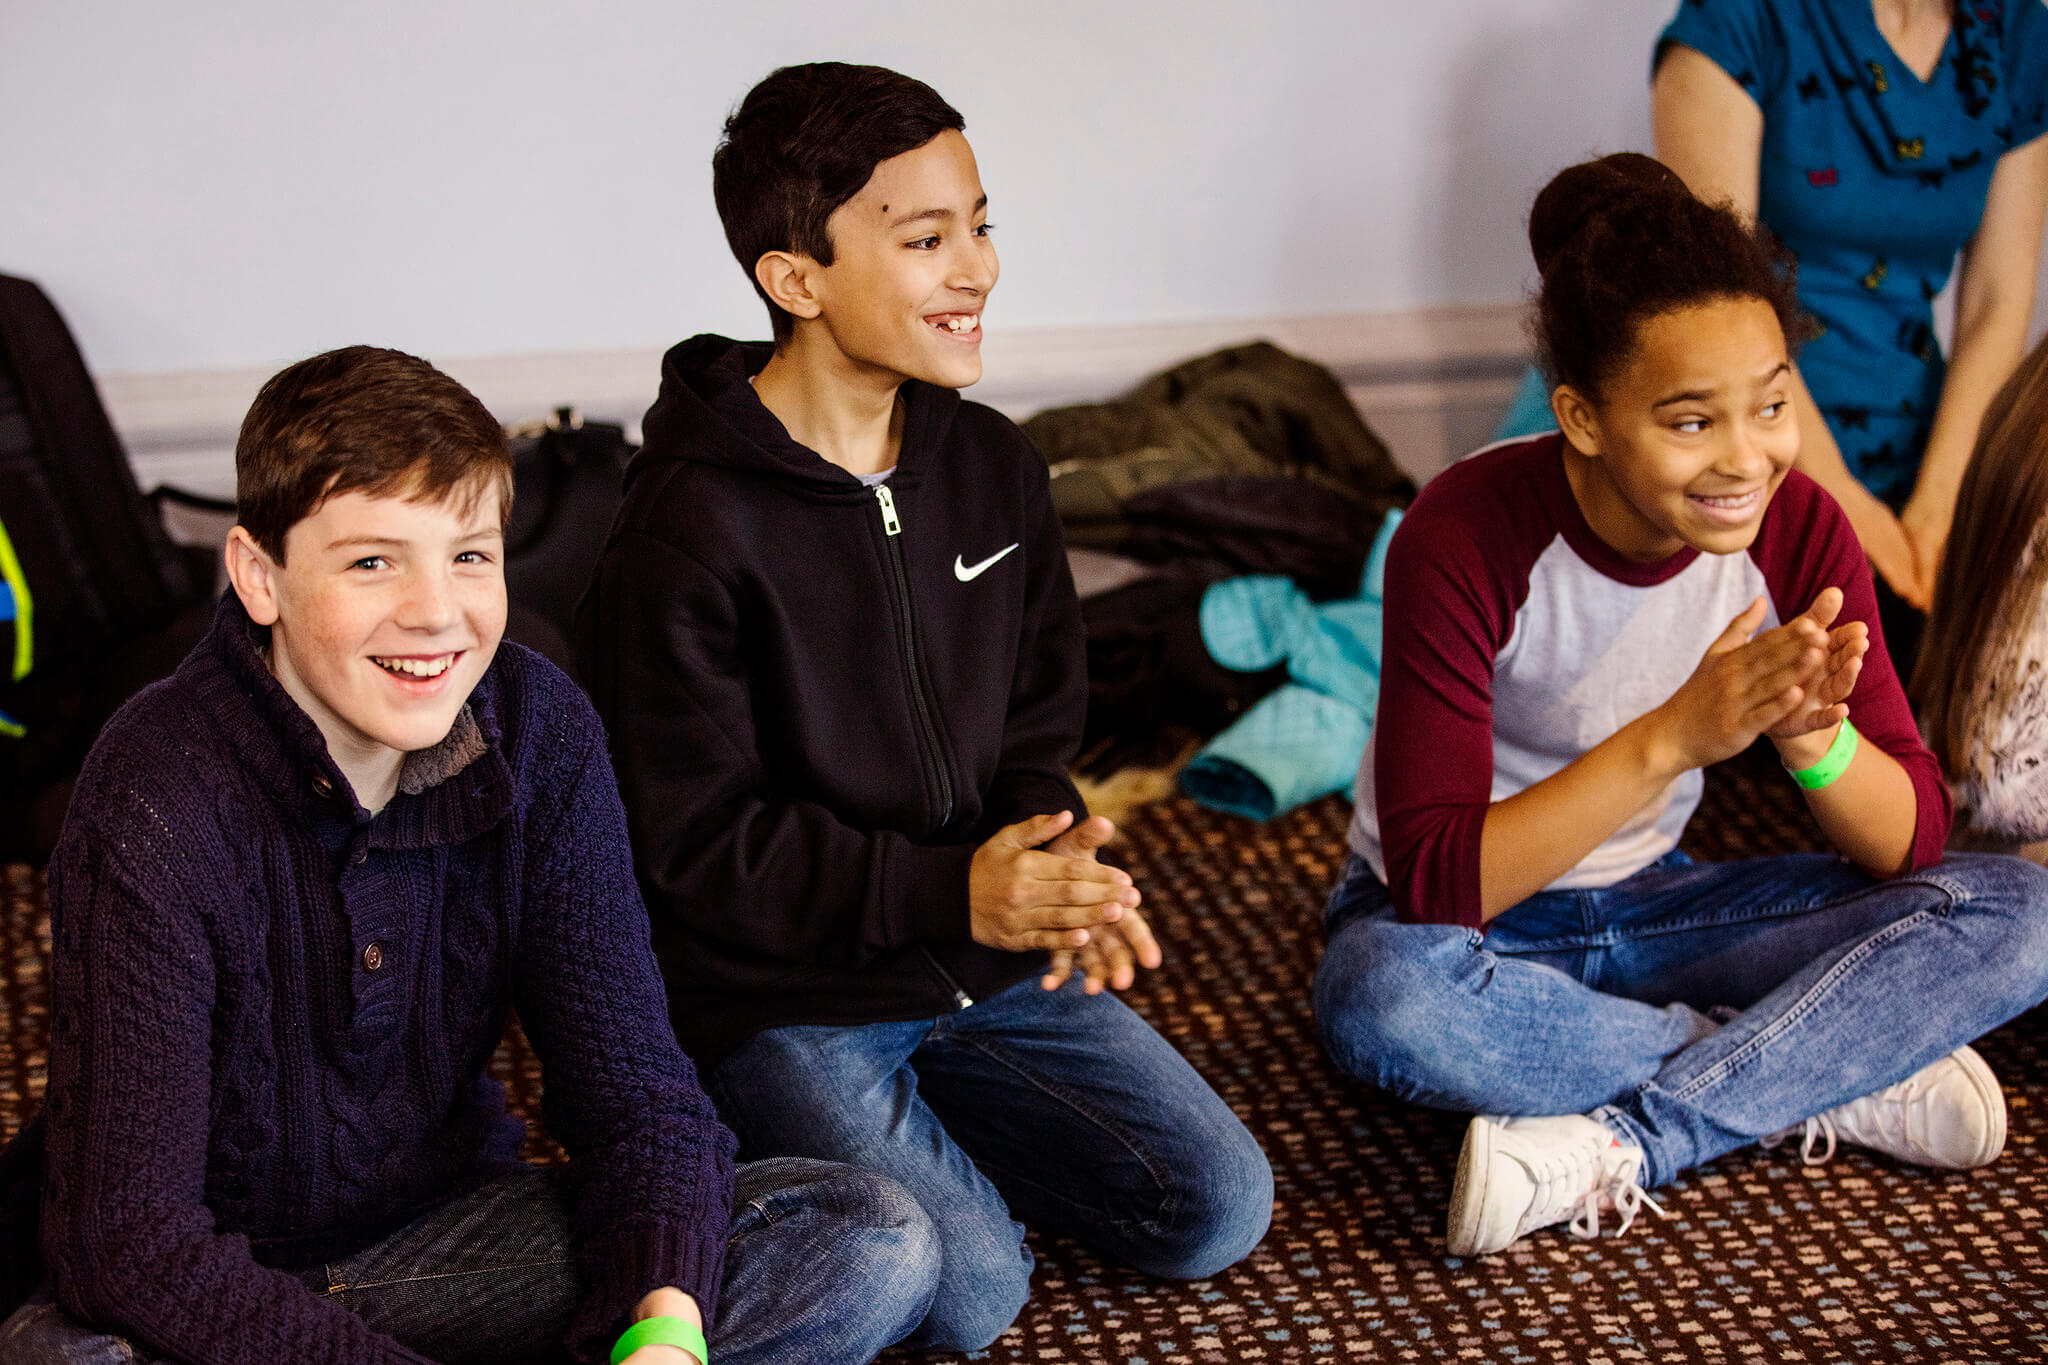 Kids & Youth - Children are a huge part of the church and there are multiple weekly programmes for children of all ages, with a special monthly event for the teenagers too.